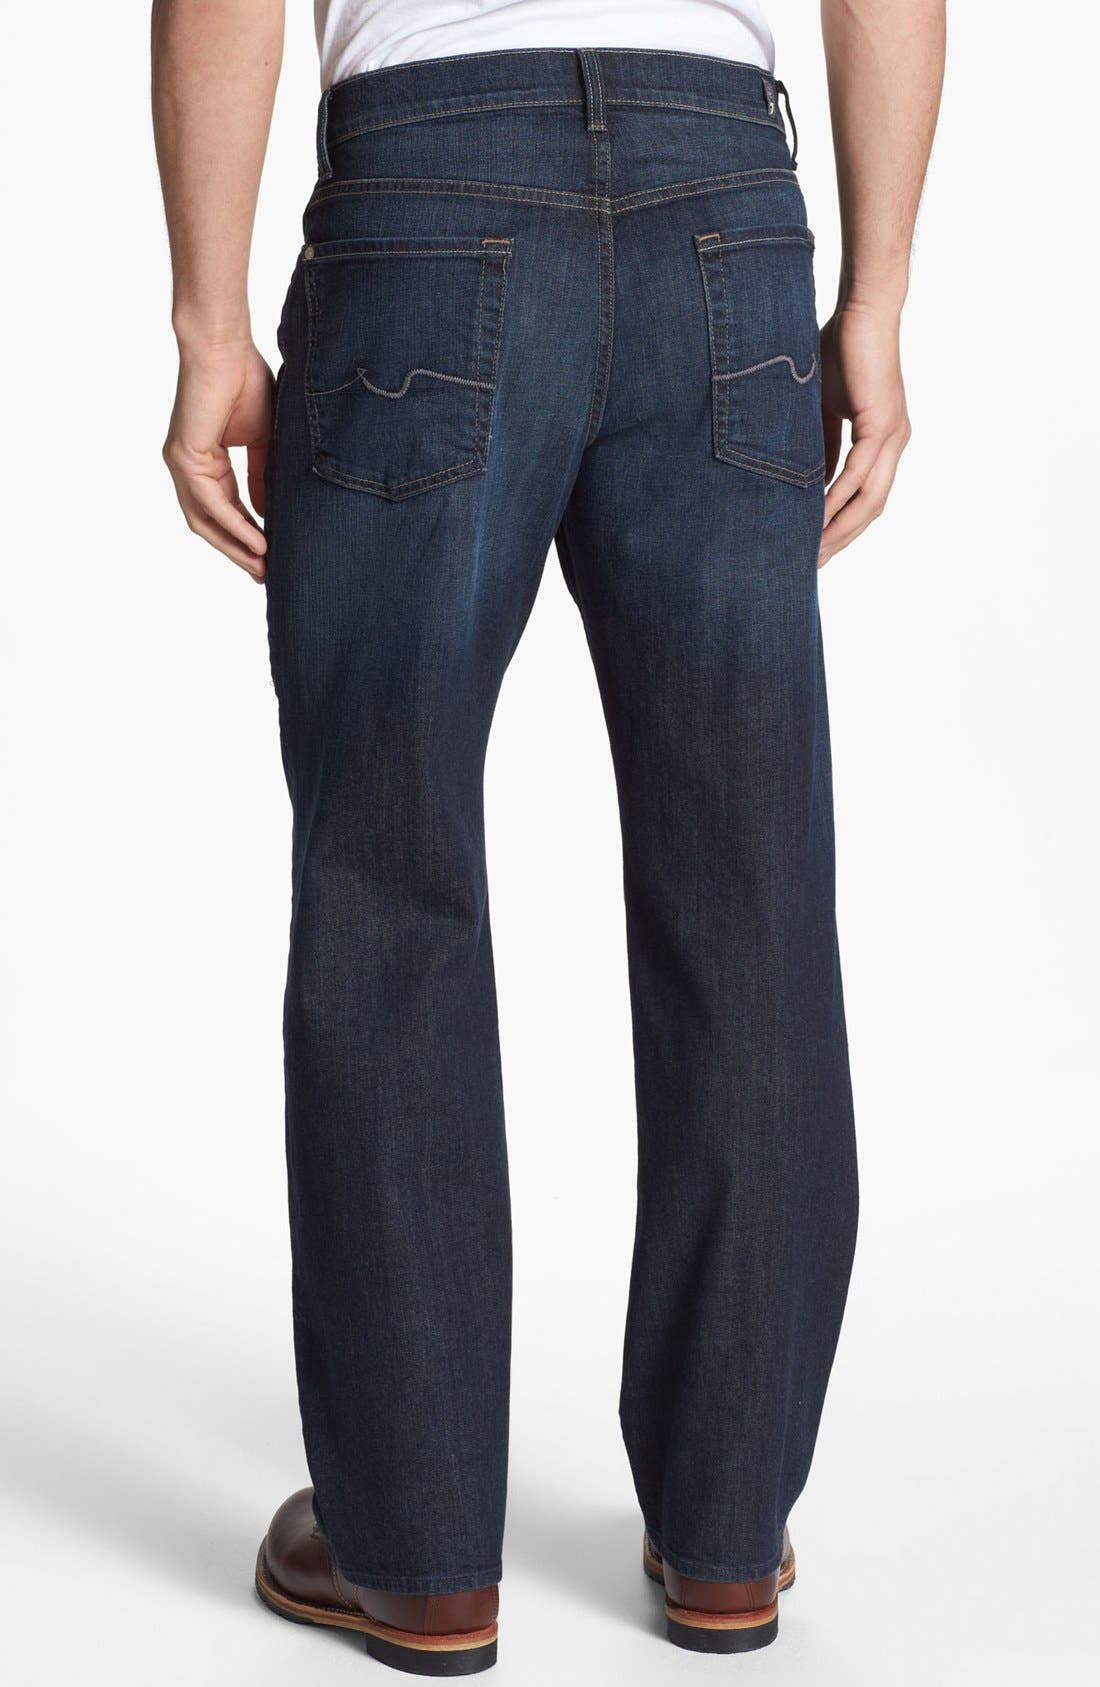 Alternate Image 1 Selected - 7 For All Mankind® Relaxed Leg Jeans (Worn Hawthorne) (Online Only)